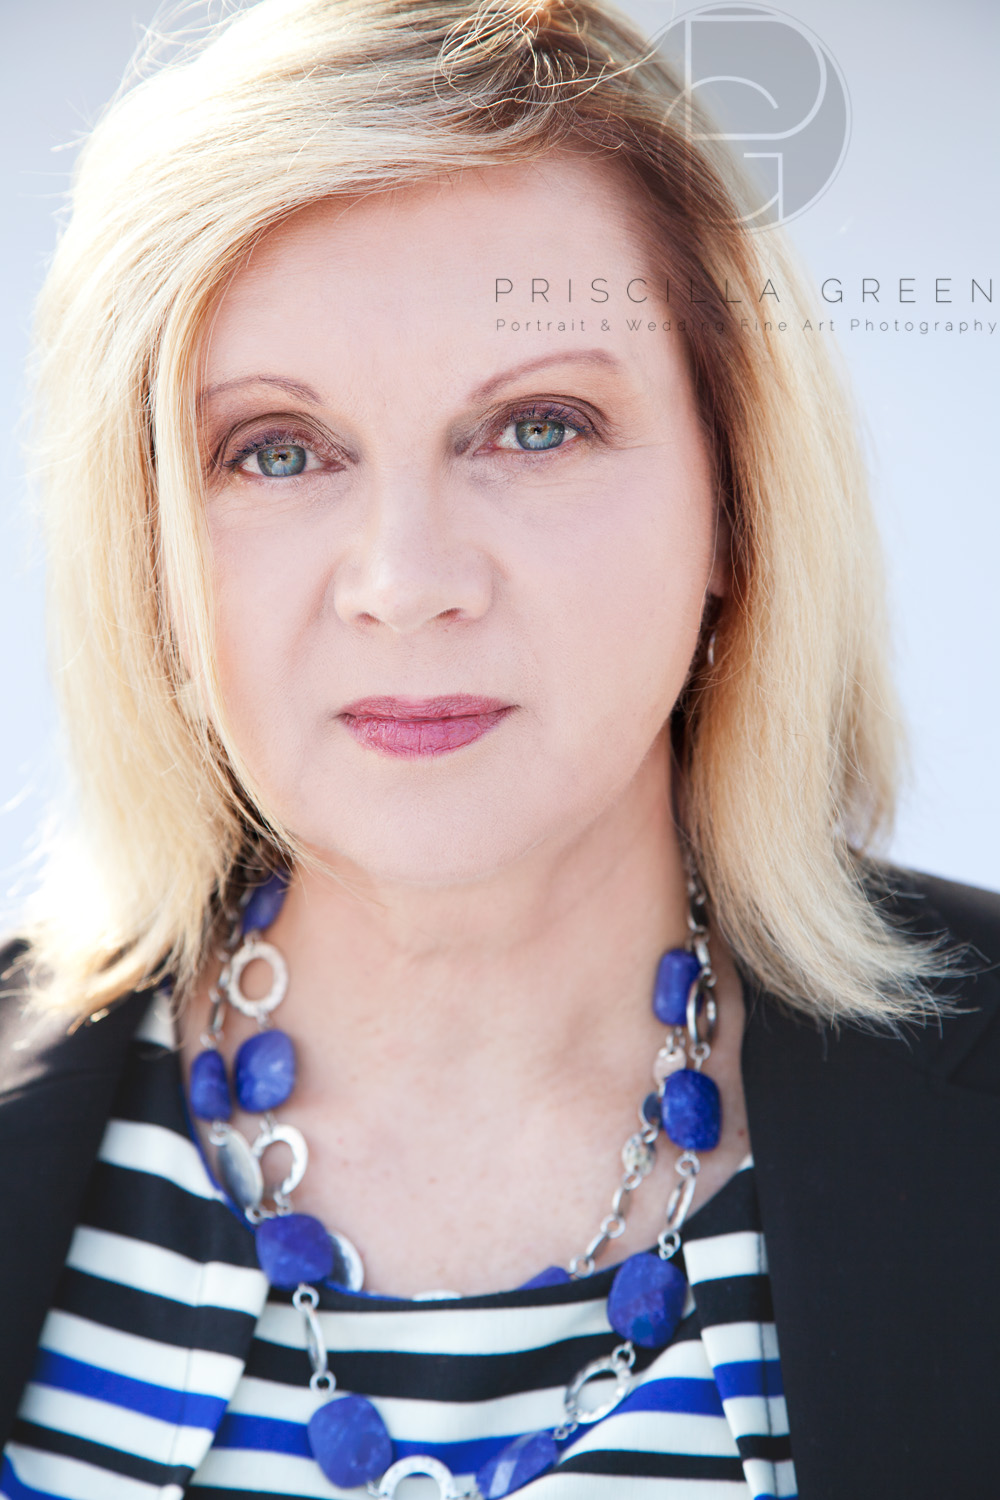 Priscillagreenphotography_headshots